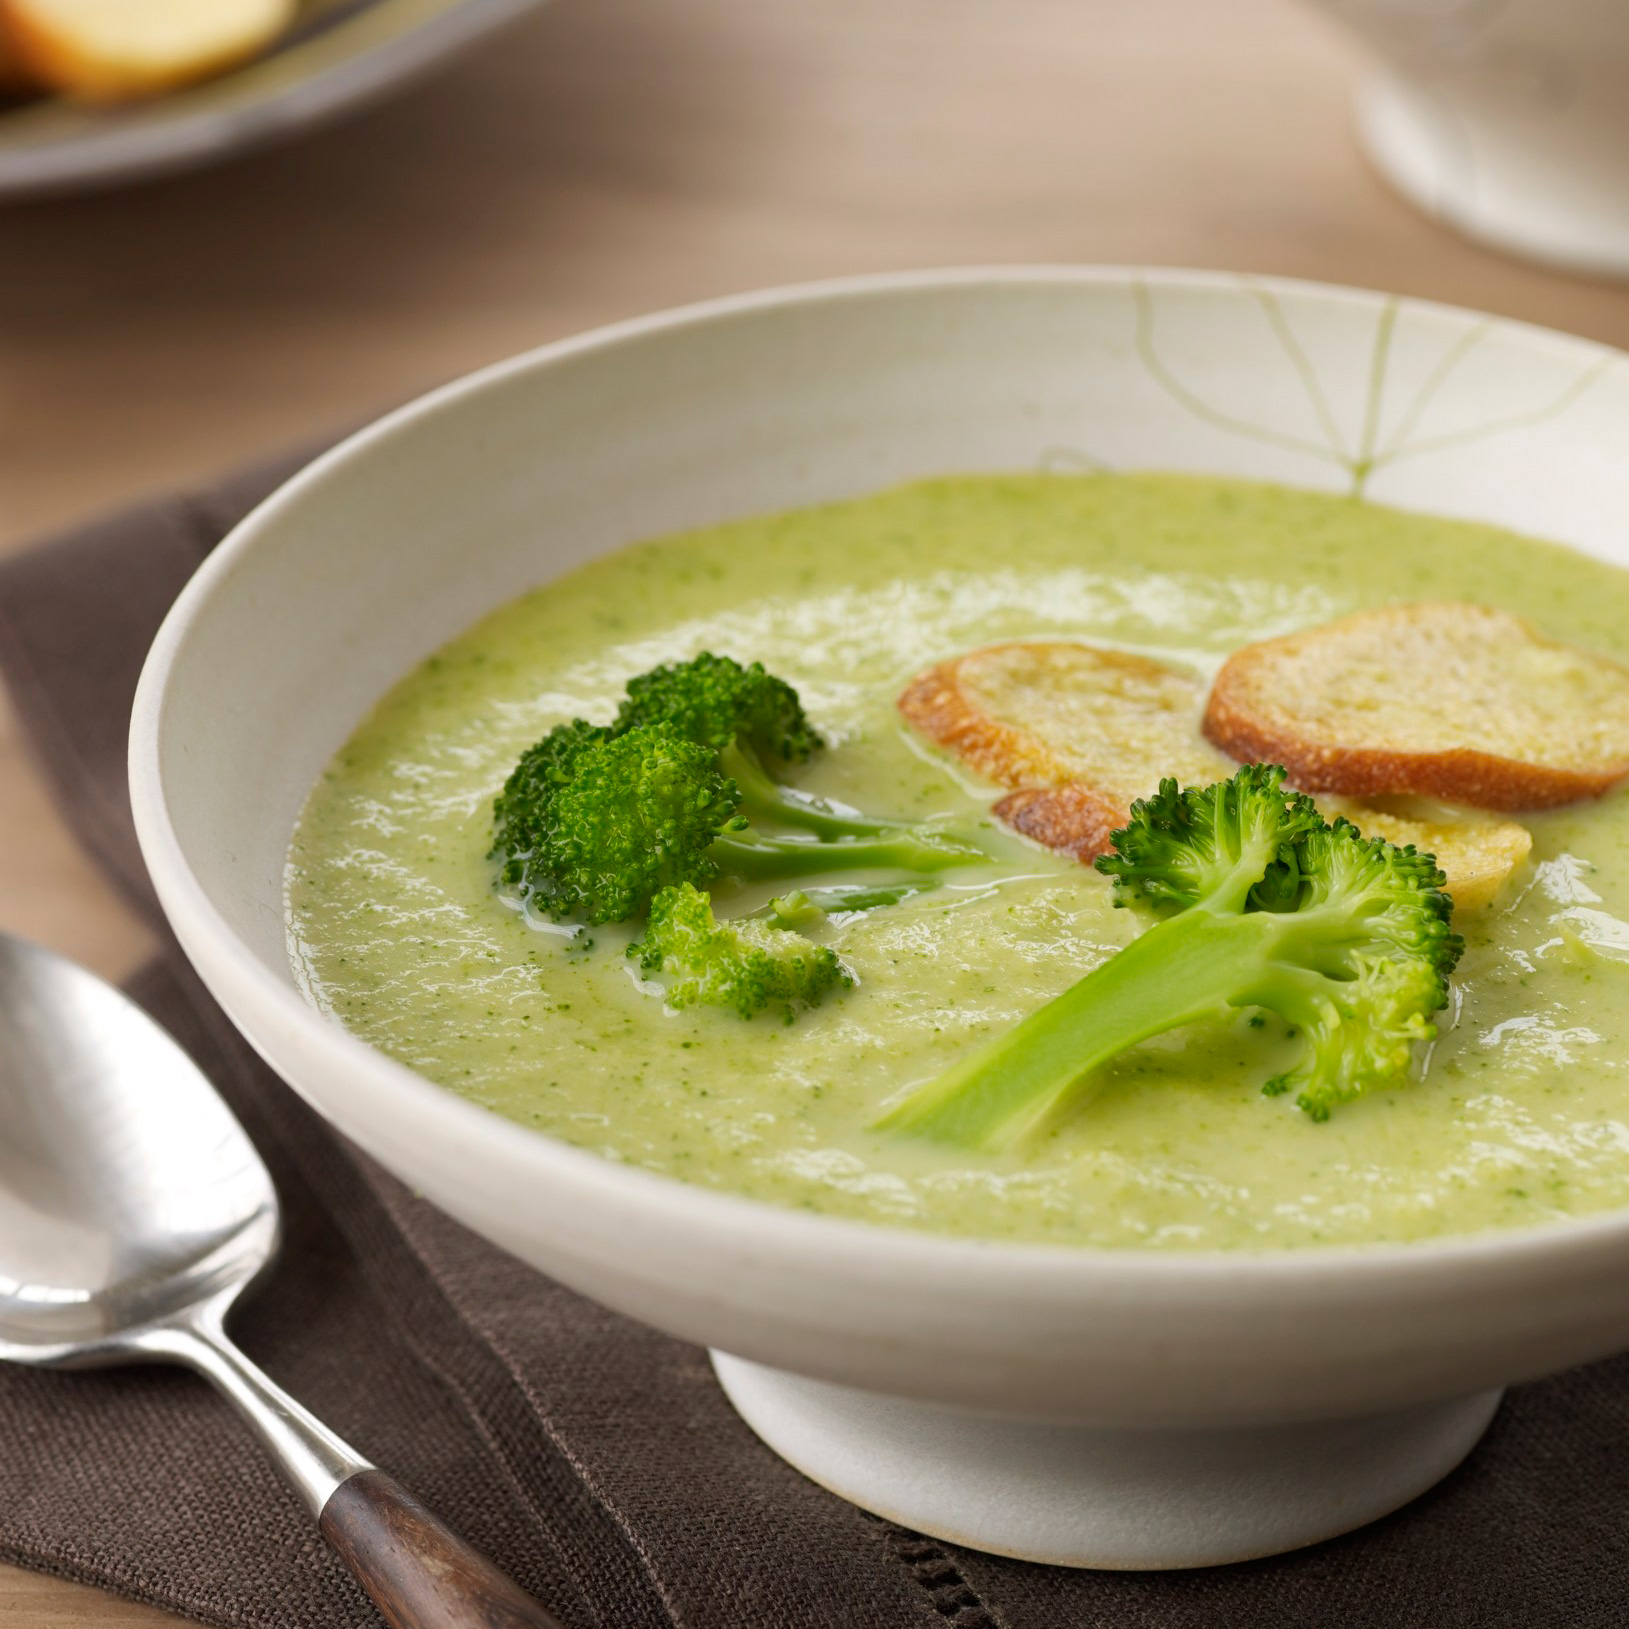 Creamy Broccoli Soup with Croutons Recipe - Marcia Kiesel | Food ...